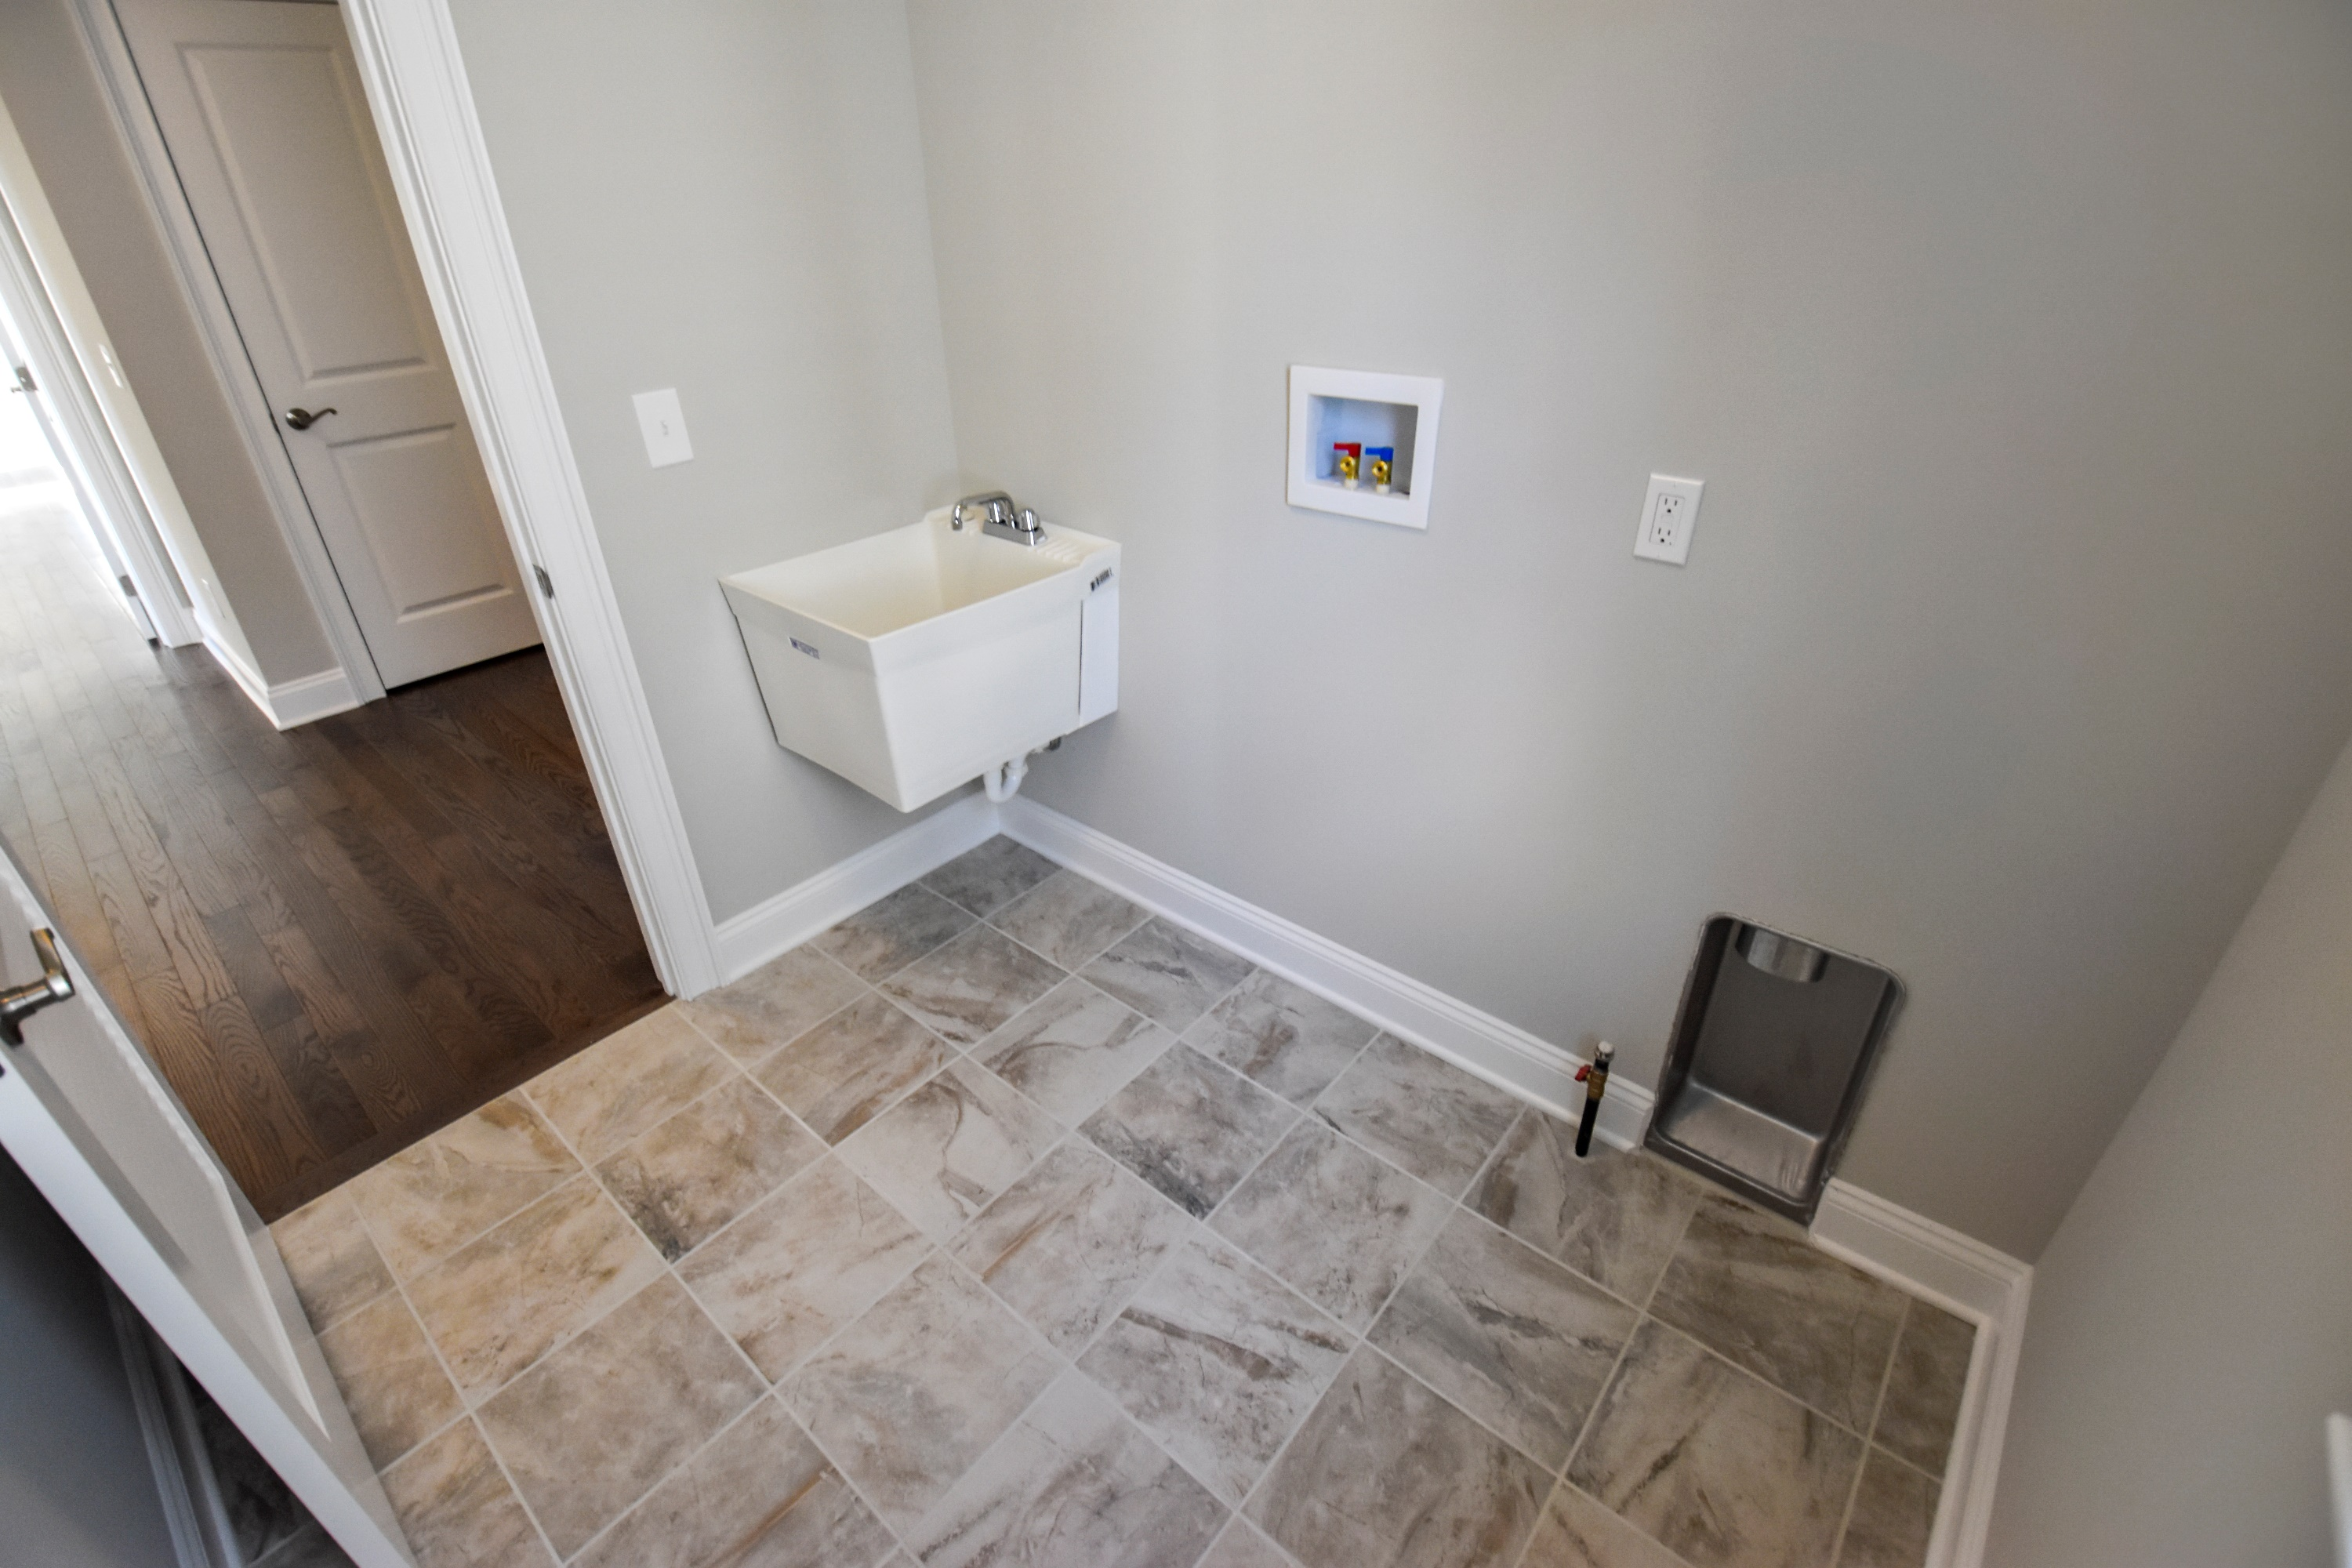 Country Classics at Scotch Plains 603 Taylors Way Laundry Room